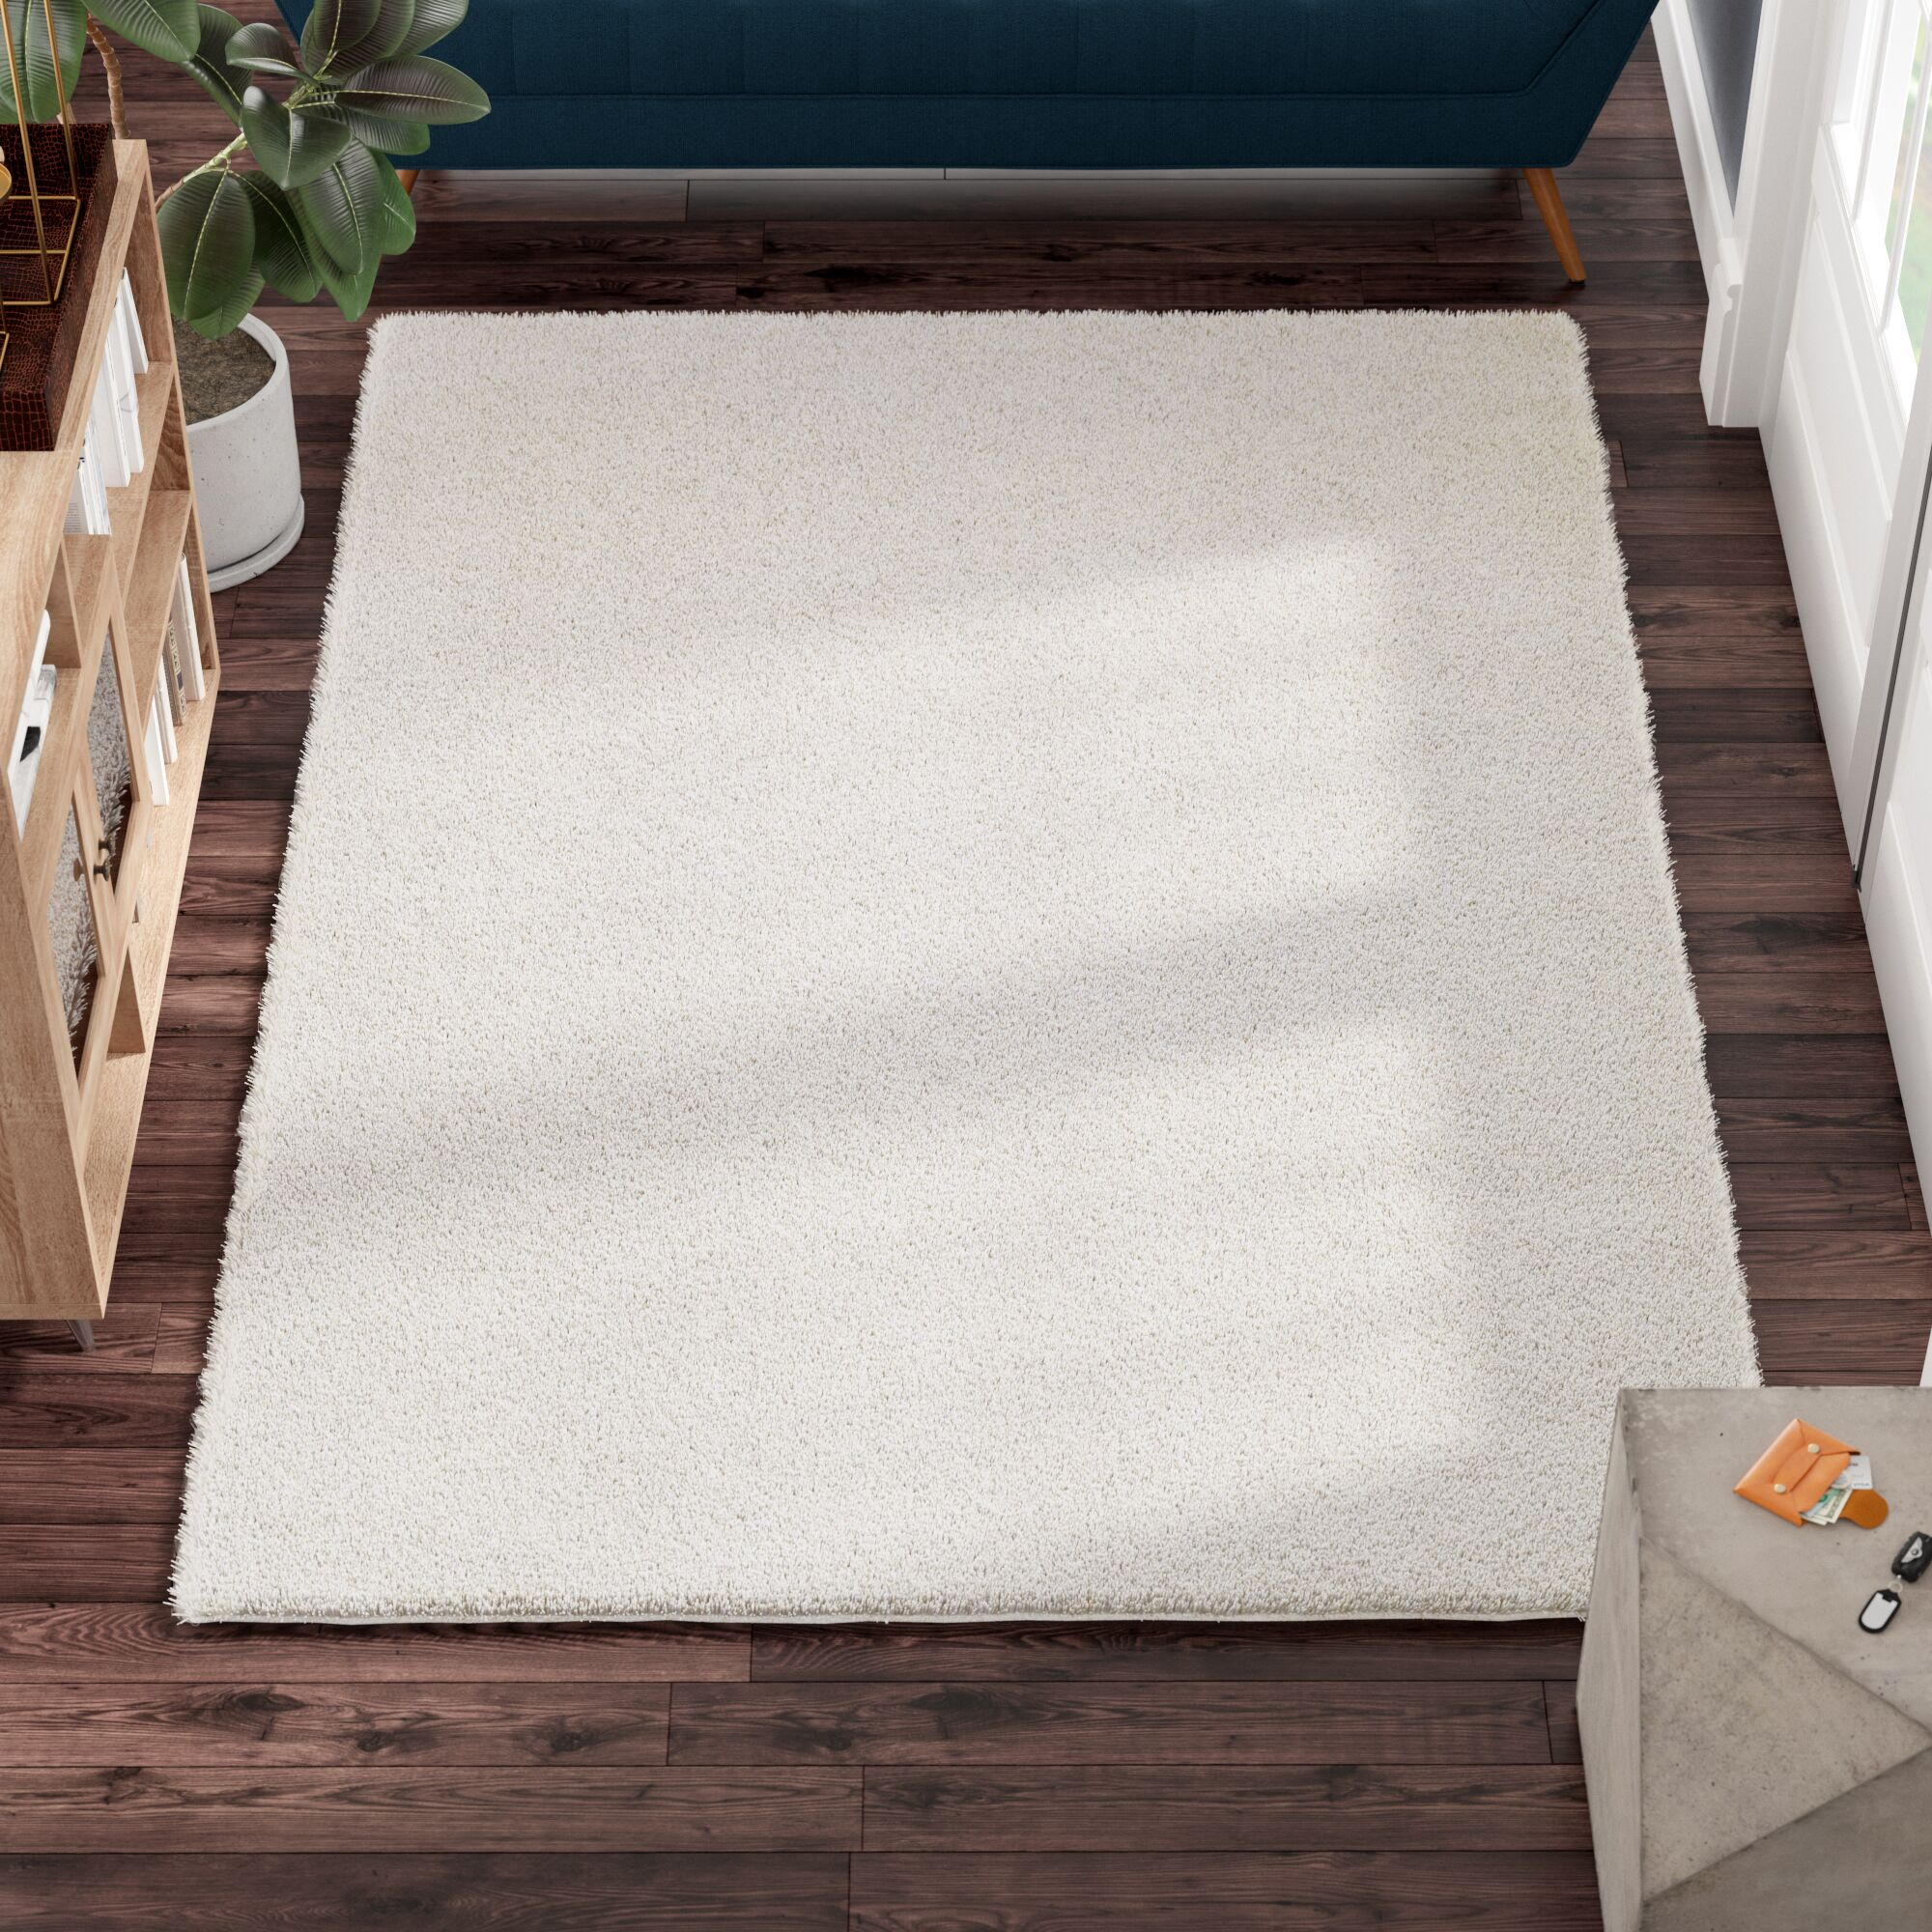 Melodee Shag White Area Rug Rug Size: Square 6' x 6'